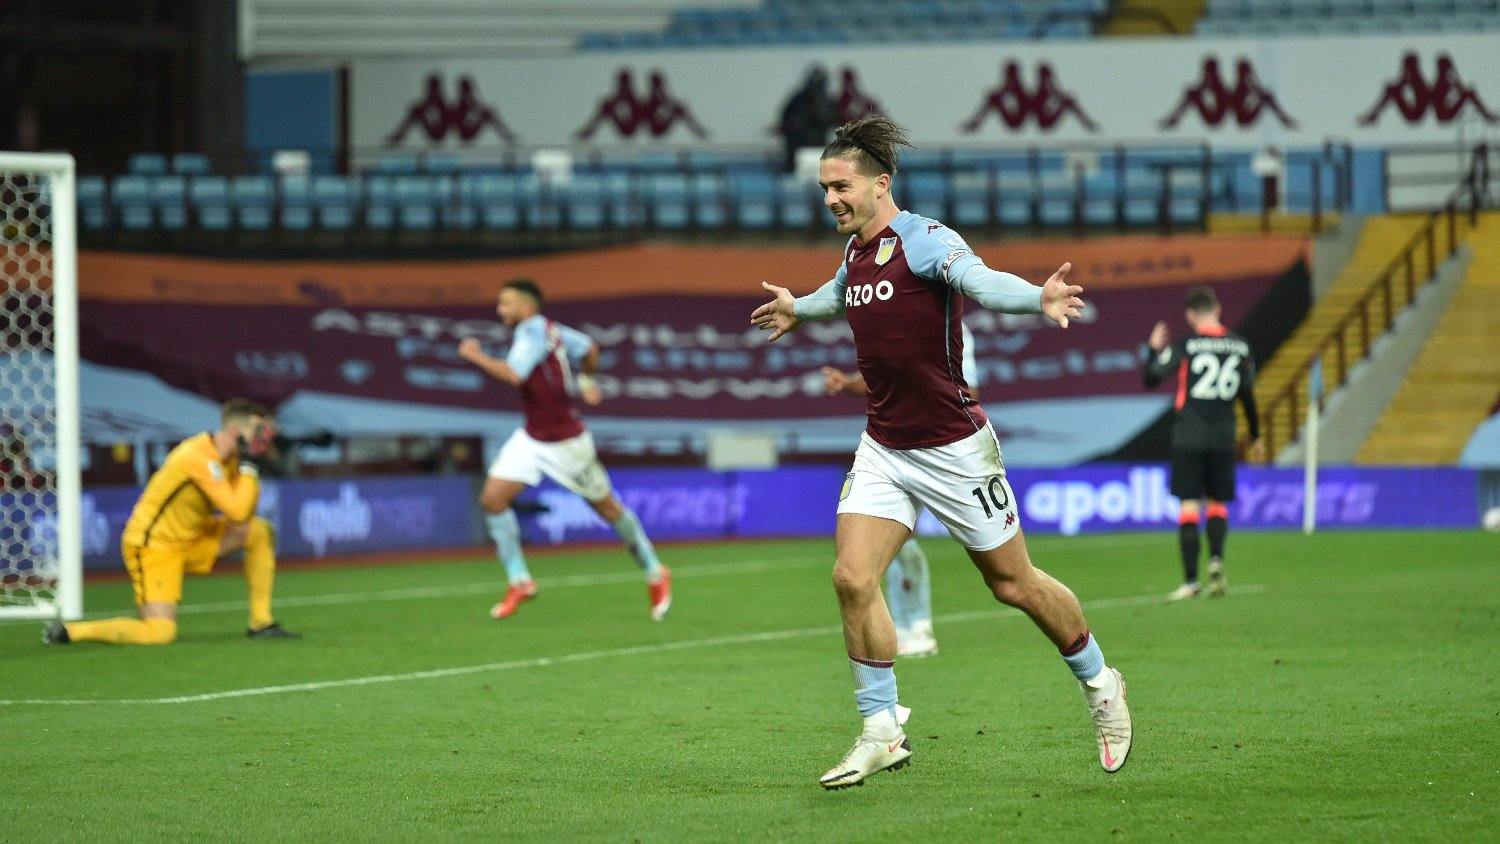 Aston Villa's Jack Grealish celebrates after scoring his side's sixth goal during the English Premier League soccer match between Aston Villa and Liverpool at the Villa Park stadium in Birmingham, England, Sunday, Oct. 4, 2020.